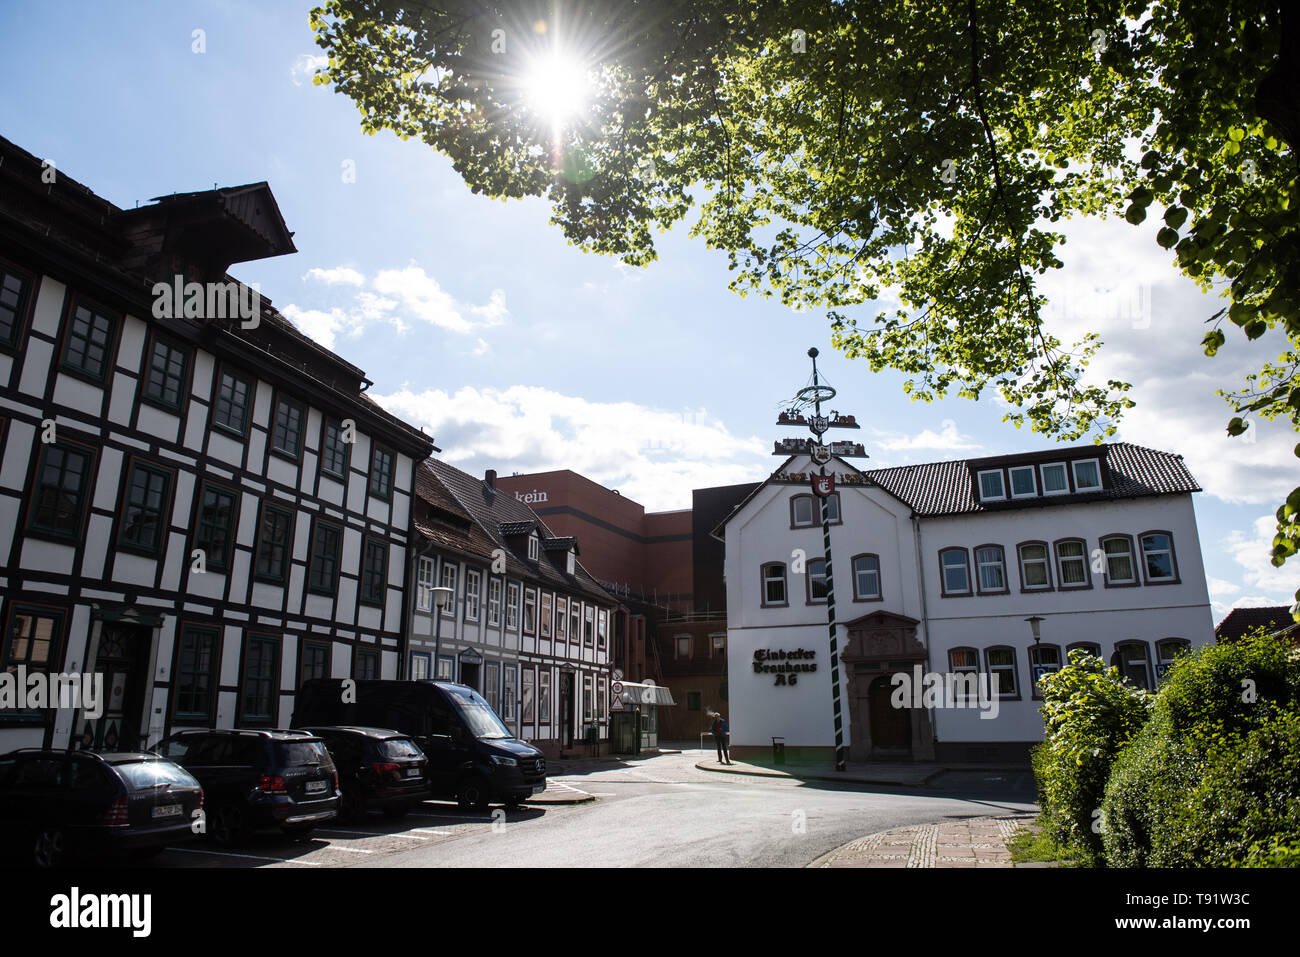 Einbeck, Germany. 14th May, 2019. The sun shines over the entrance to the Einbecker Brauhaus AG premises. The Einbecker Brauhaus is one of the most famous breweries in Germany. Credit: Swen Pförtner/dpa/Alamy Live News - Stock Image